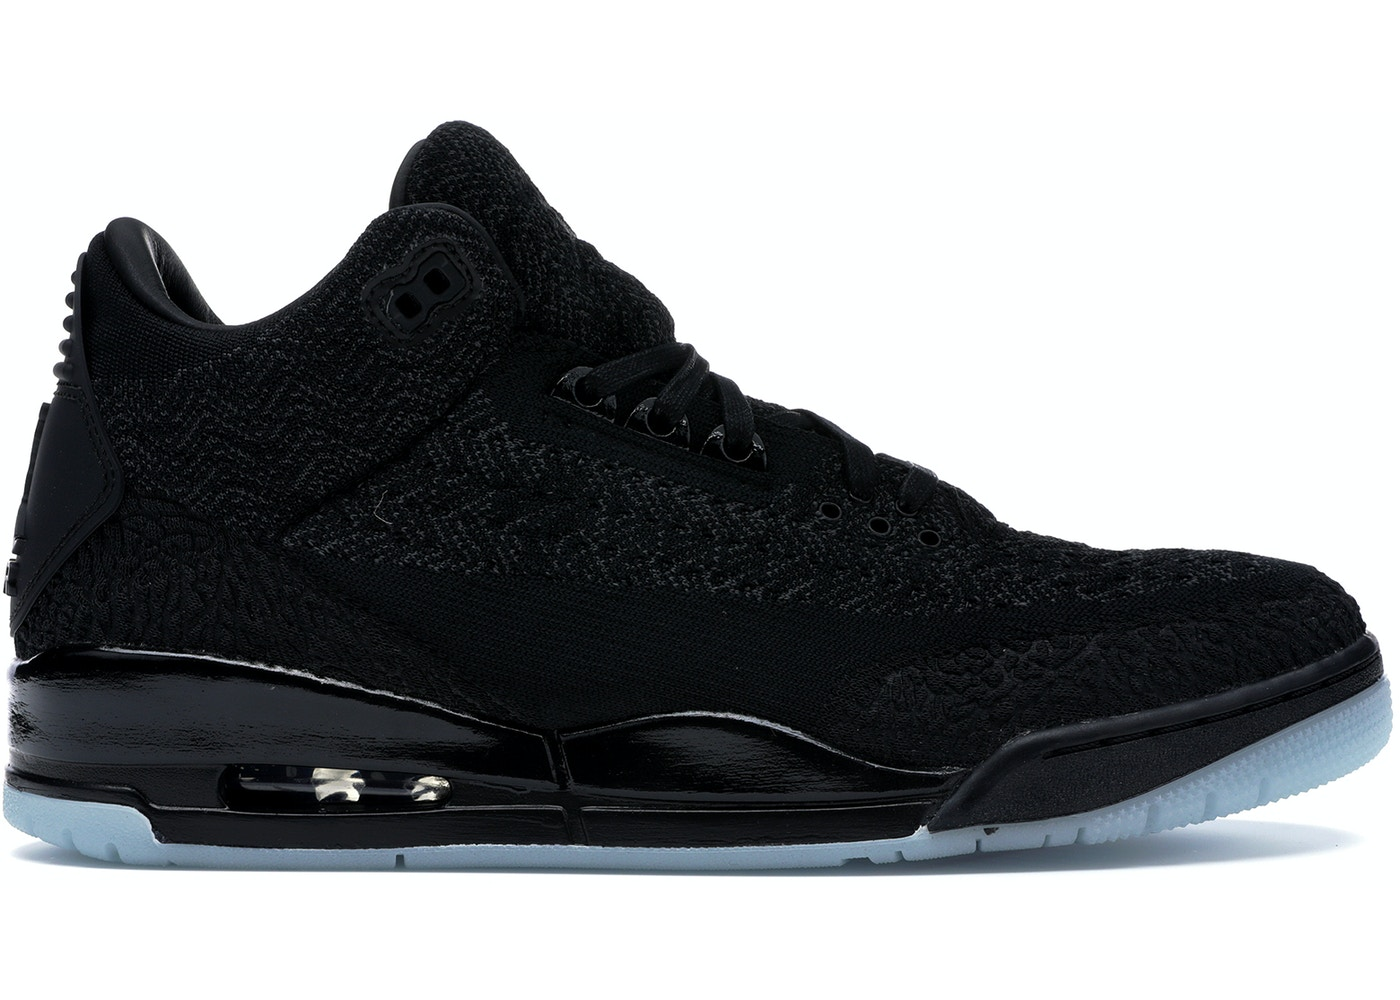 a7792946be11d Jordan 3 Retro Flyknit Black - AQ1005-001